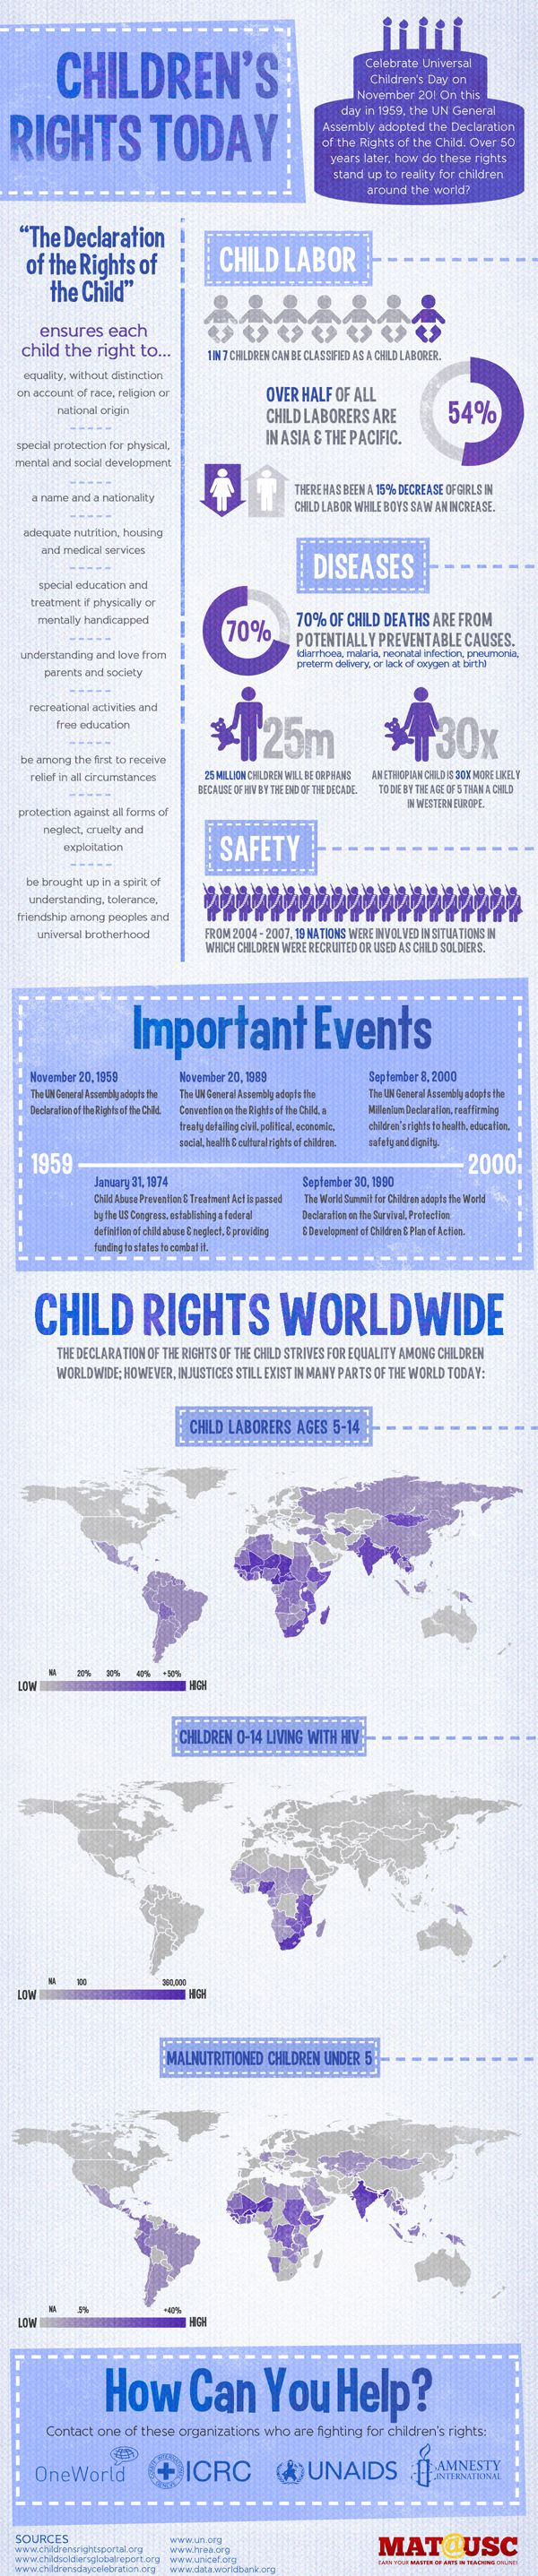 Children's Rights - Universal Children's Day